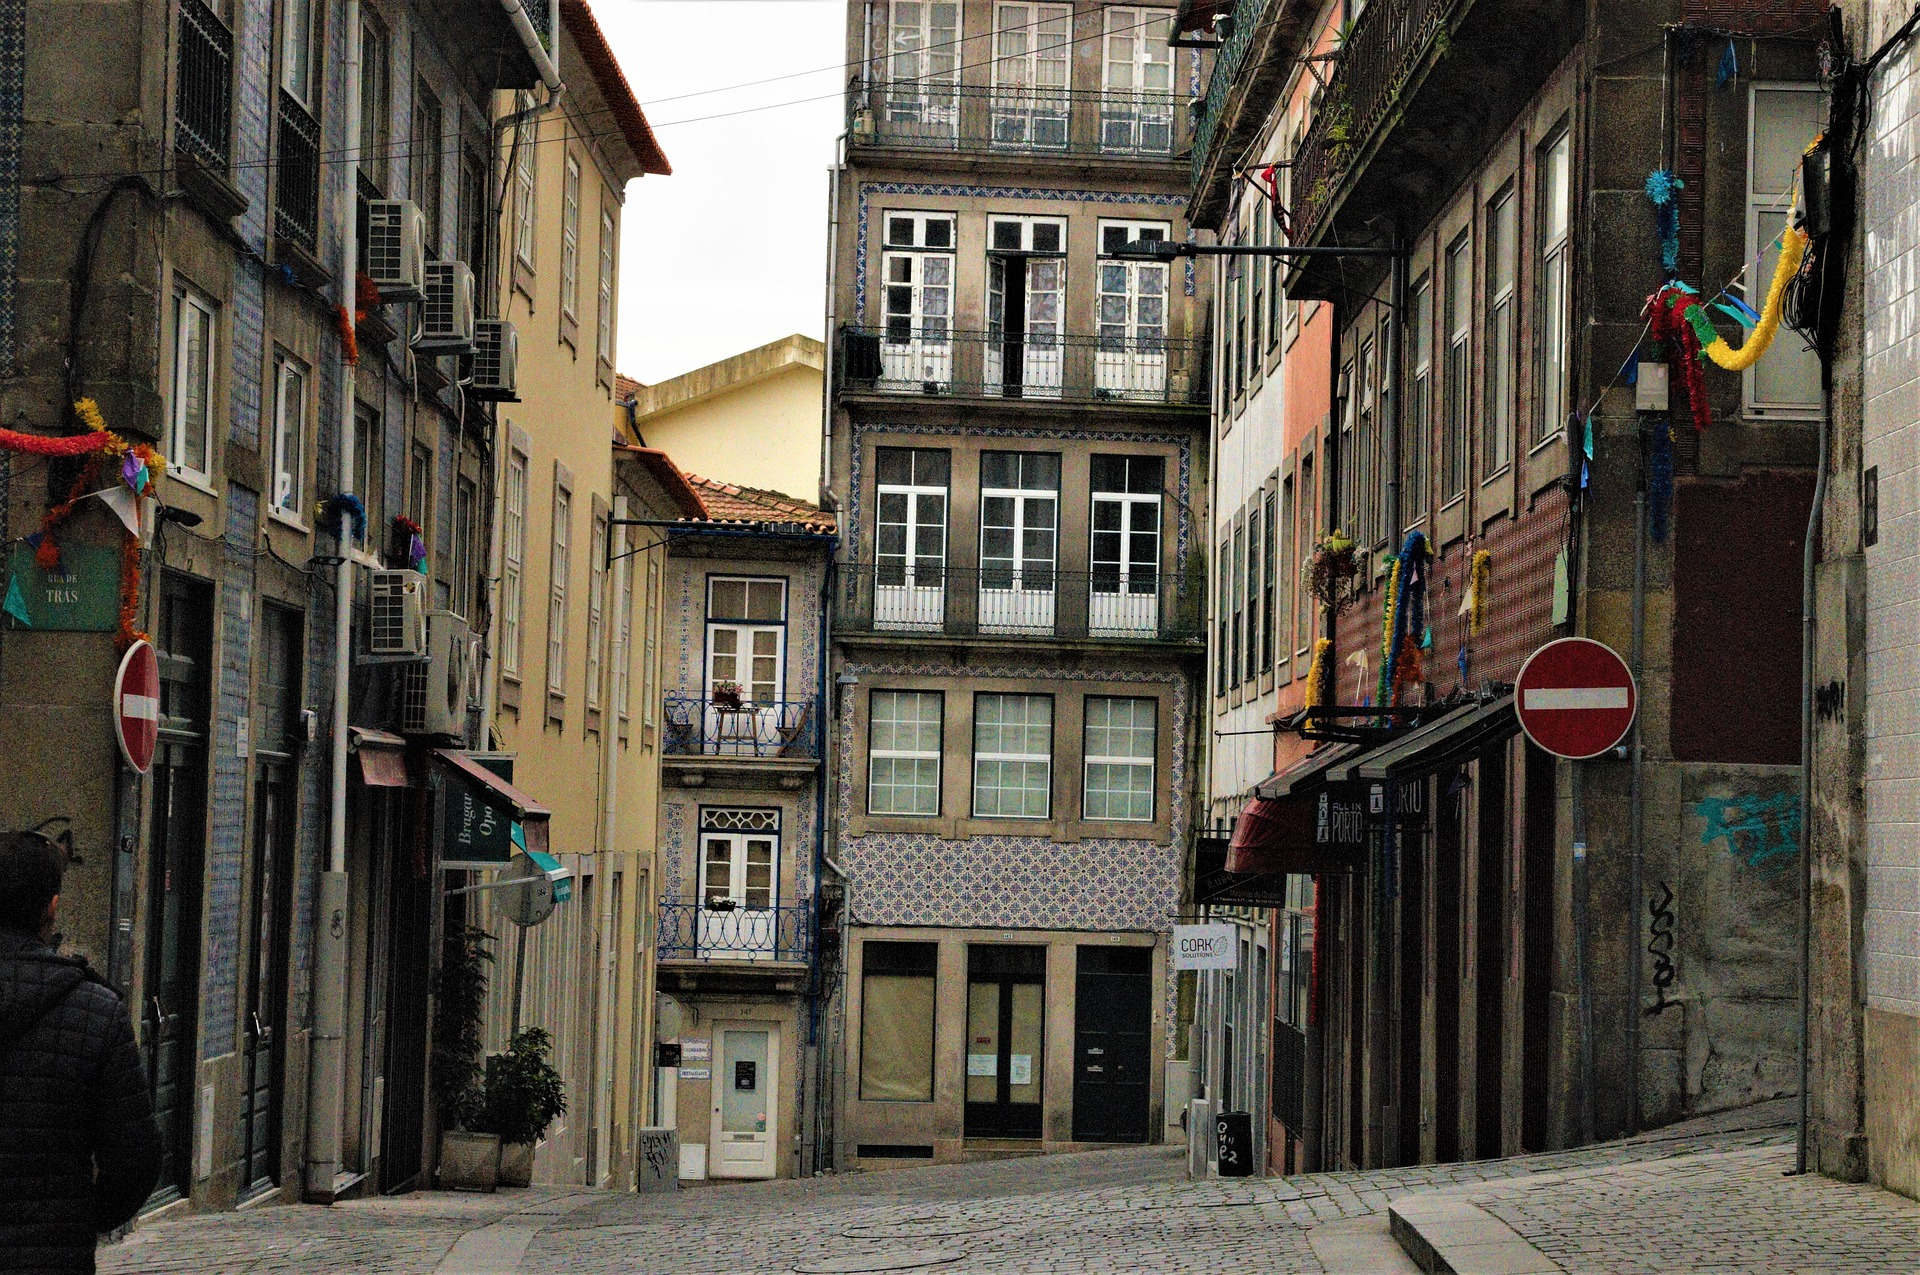 old-town-of-porto-3987507_1920